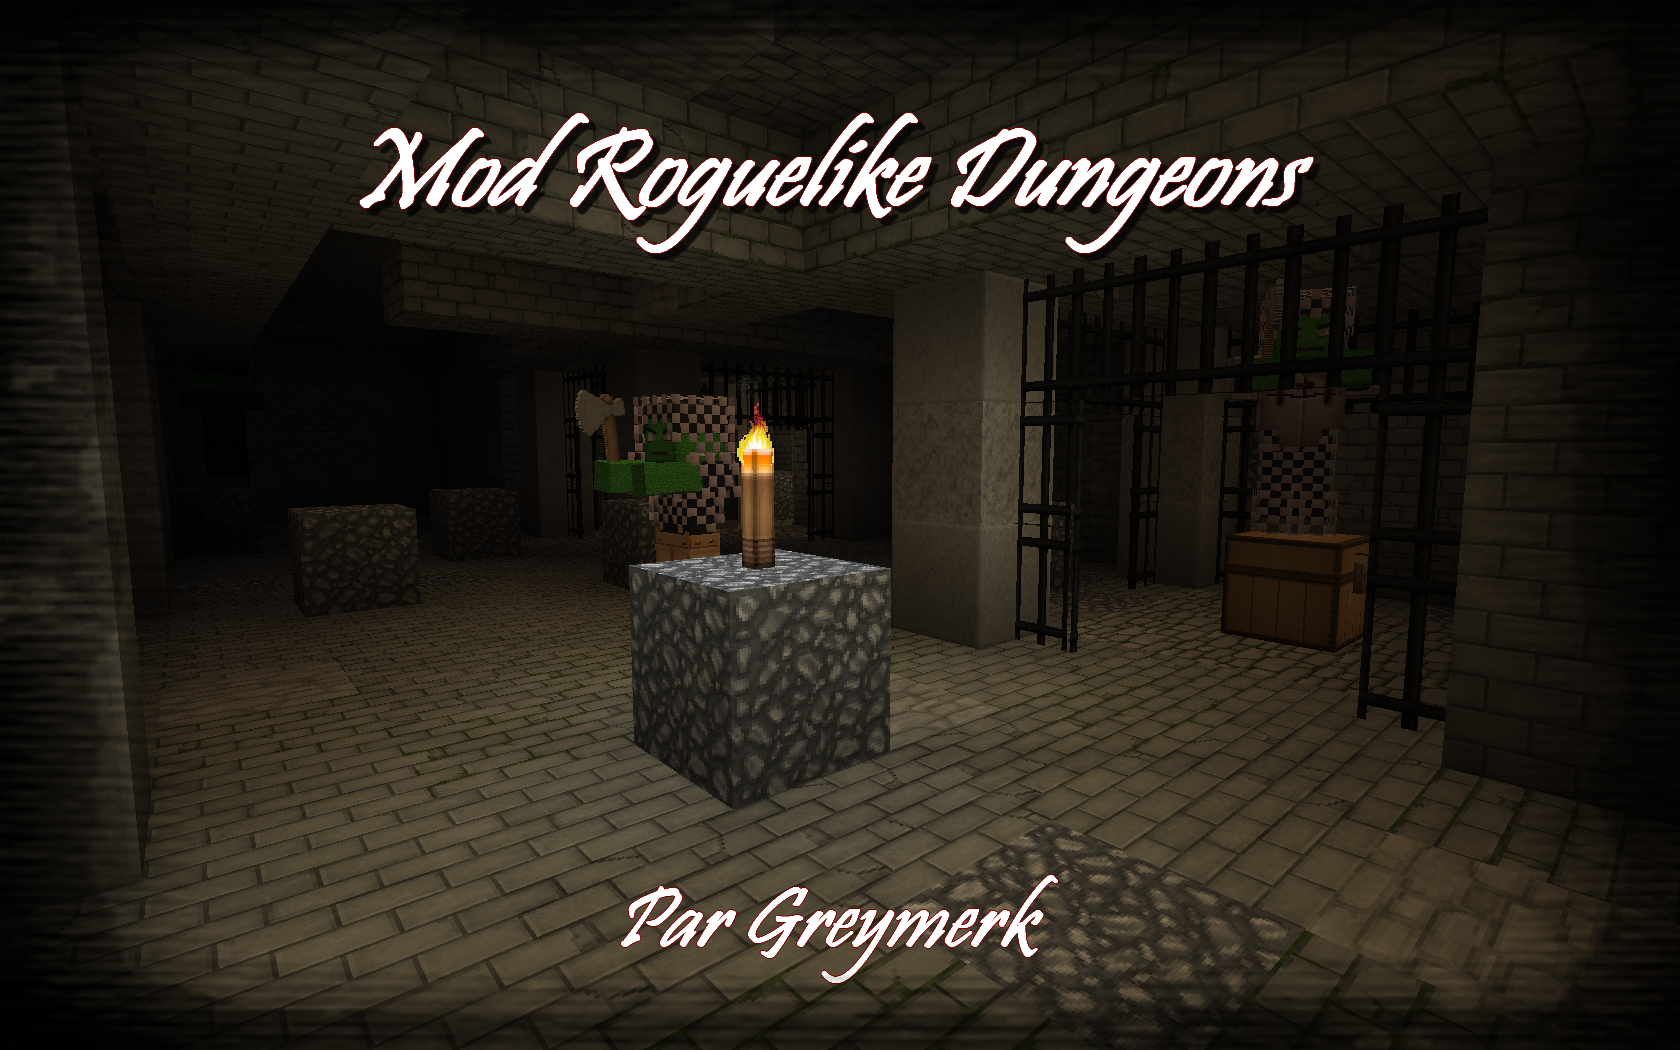 minecraft mod mob roguelike dungeons